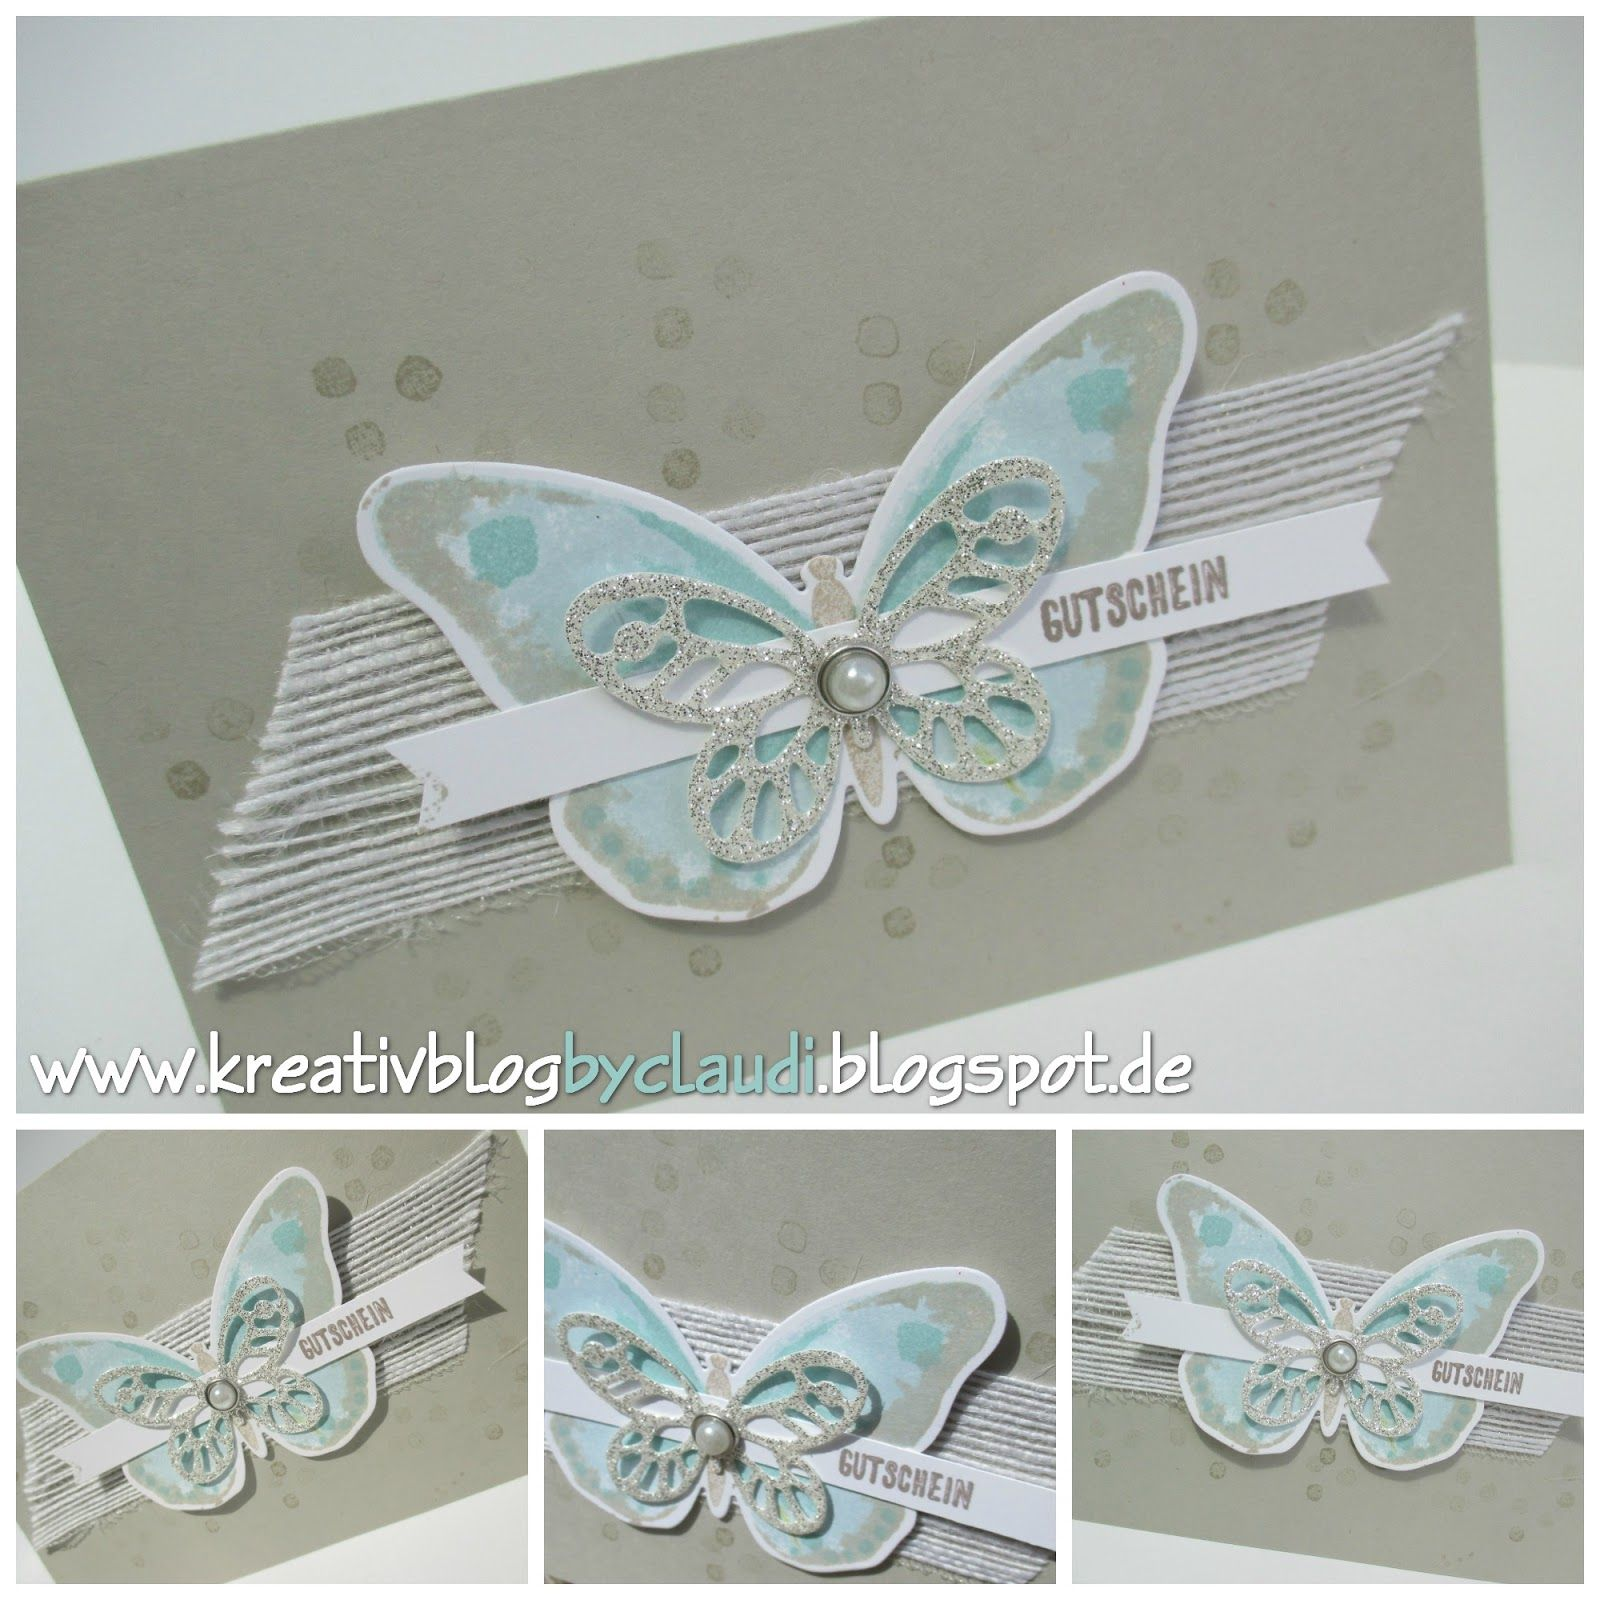 www.kreativblogbyclaudi.blogspot.de: Thinlits Butterfly Greeting